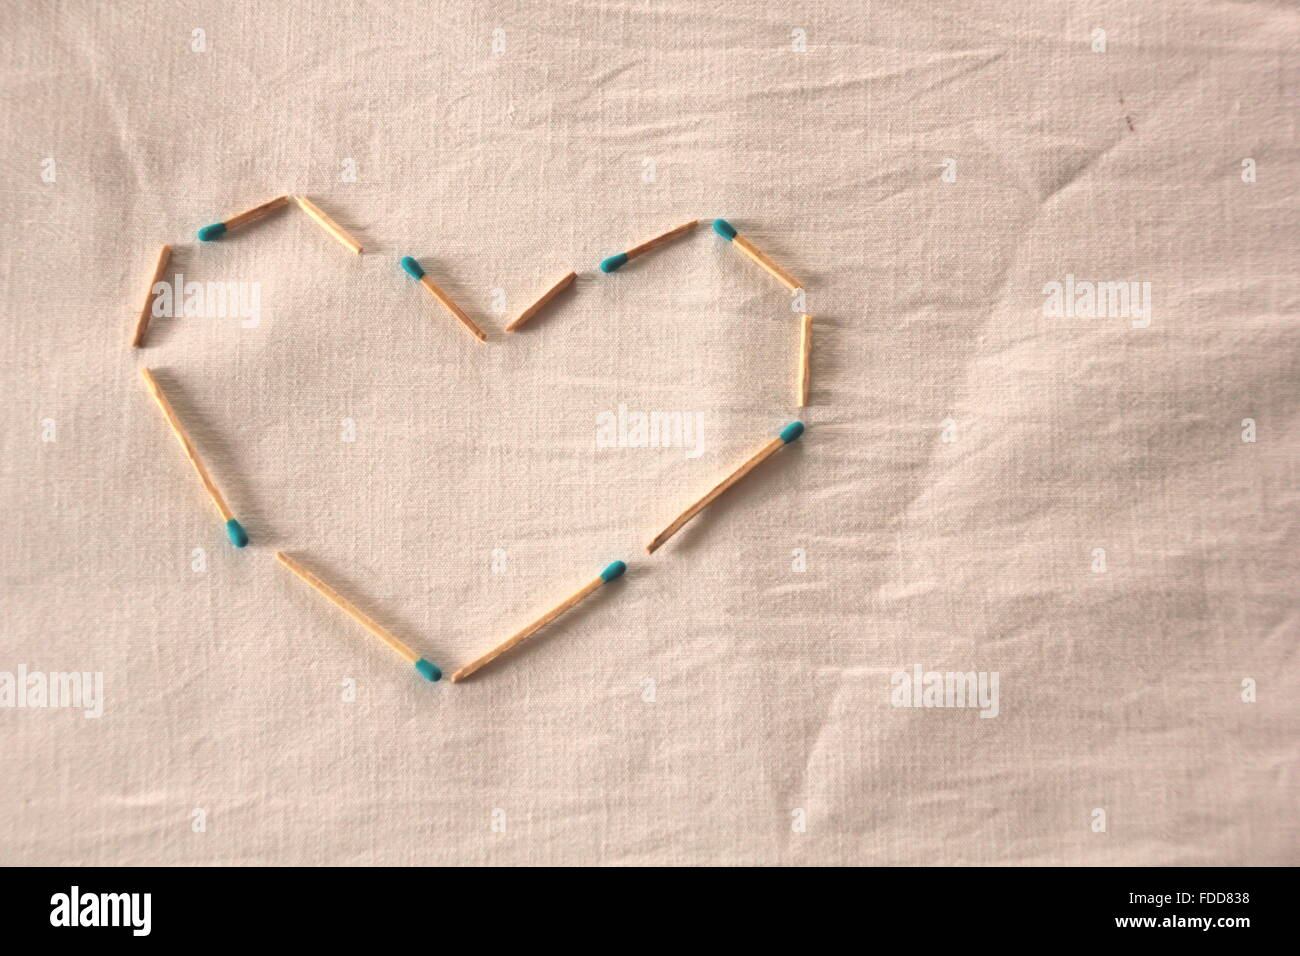 heart made of matches - Stock Image